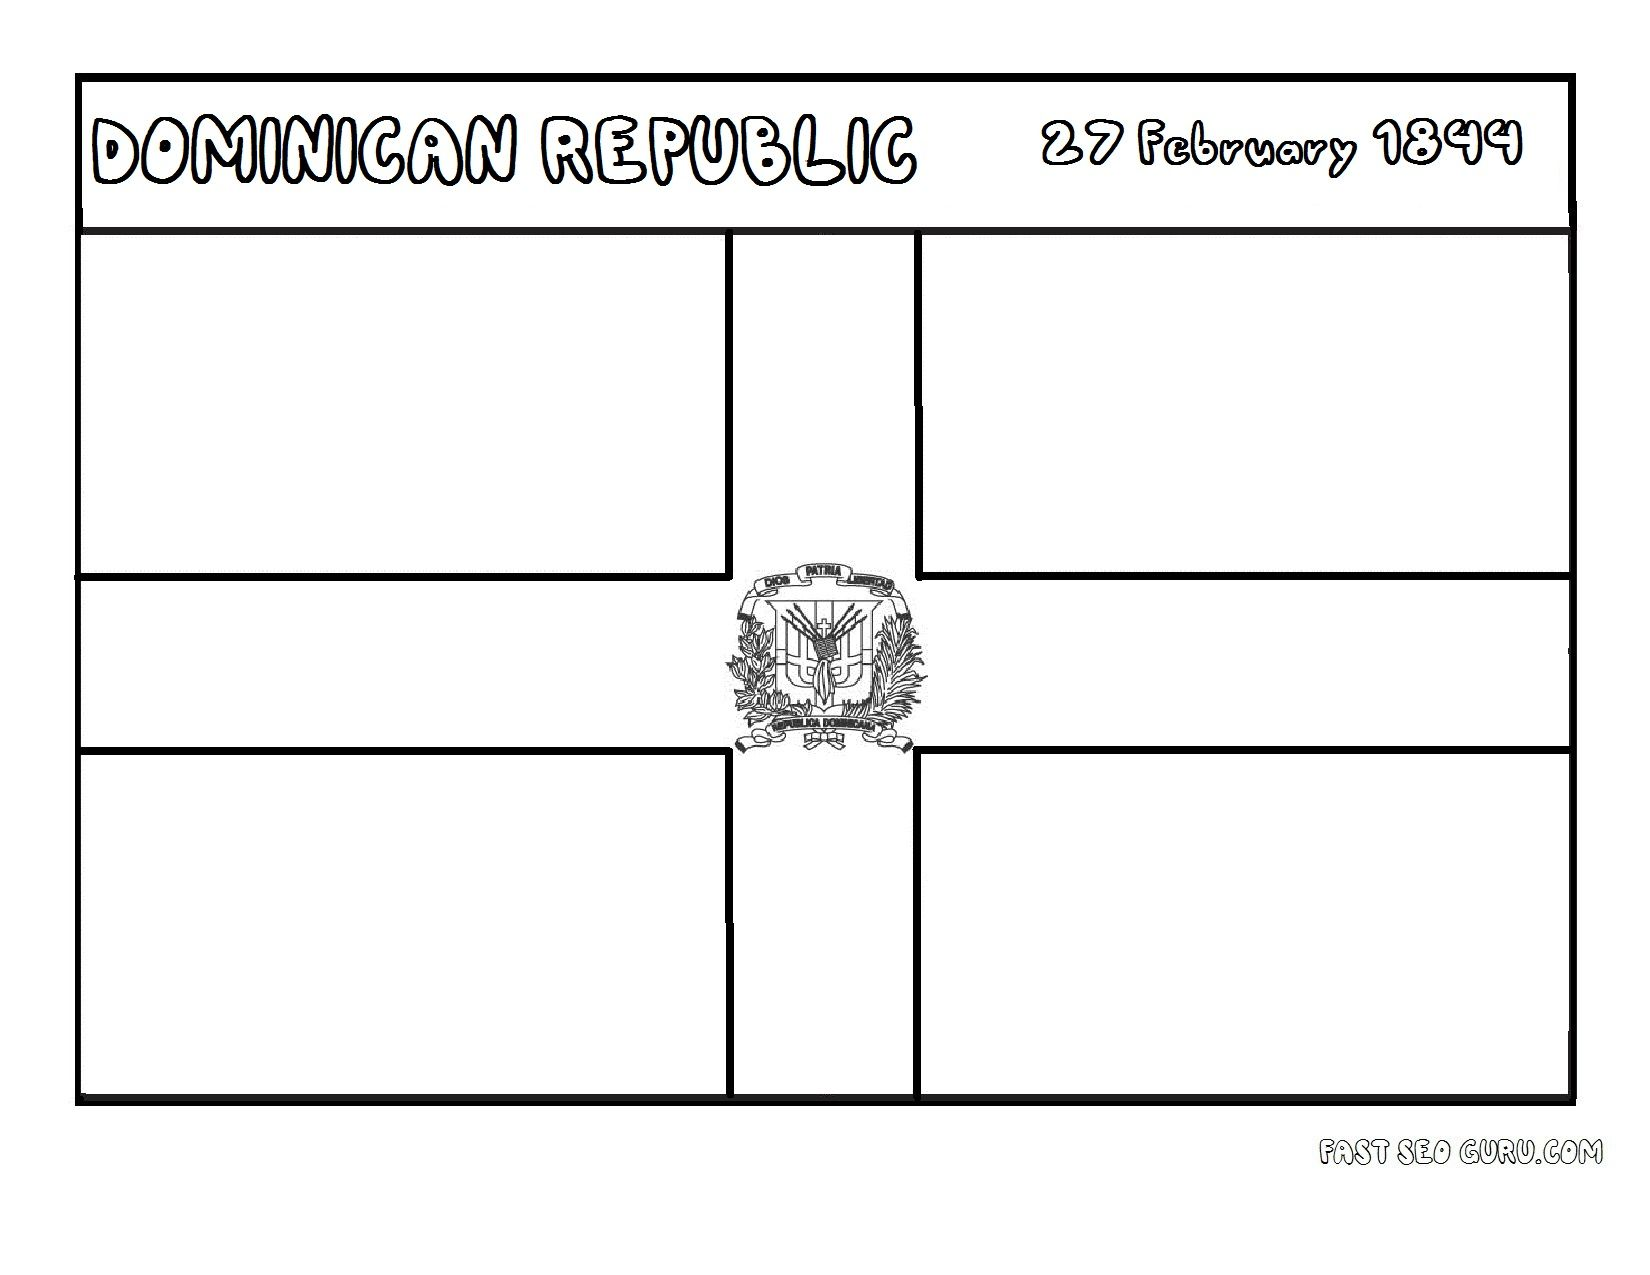 dominican republic flag coloring page - Google Search | teaching ...